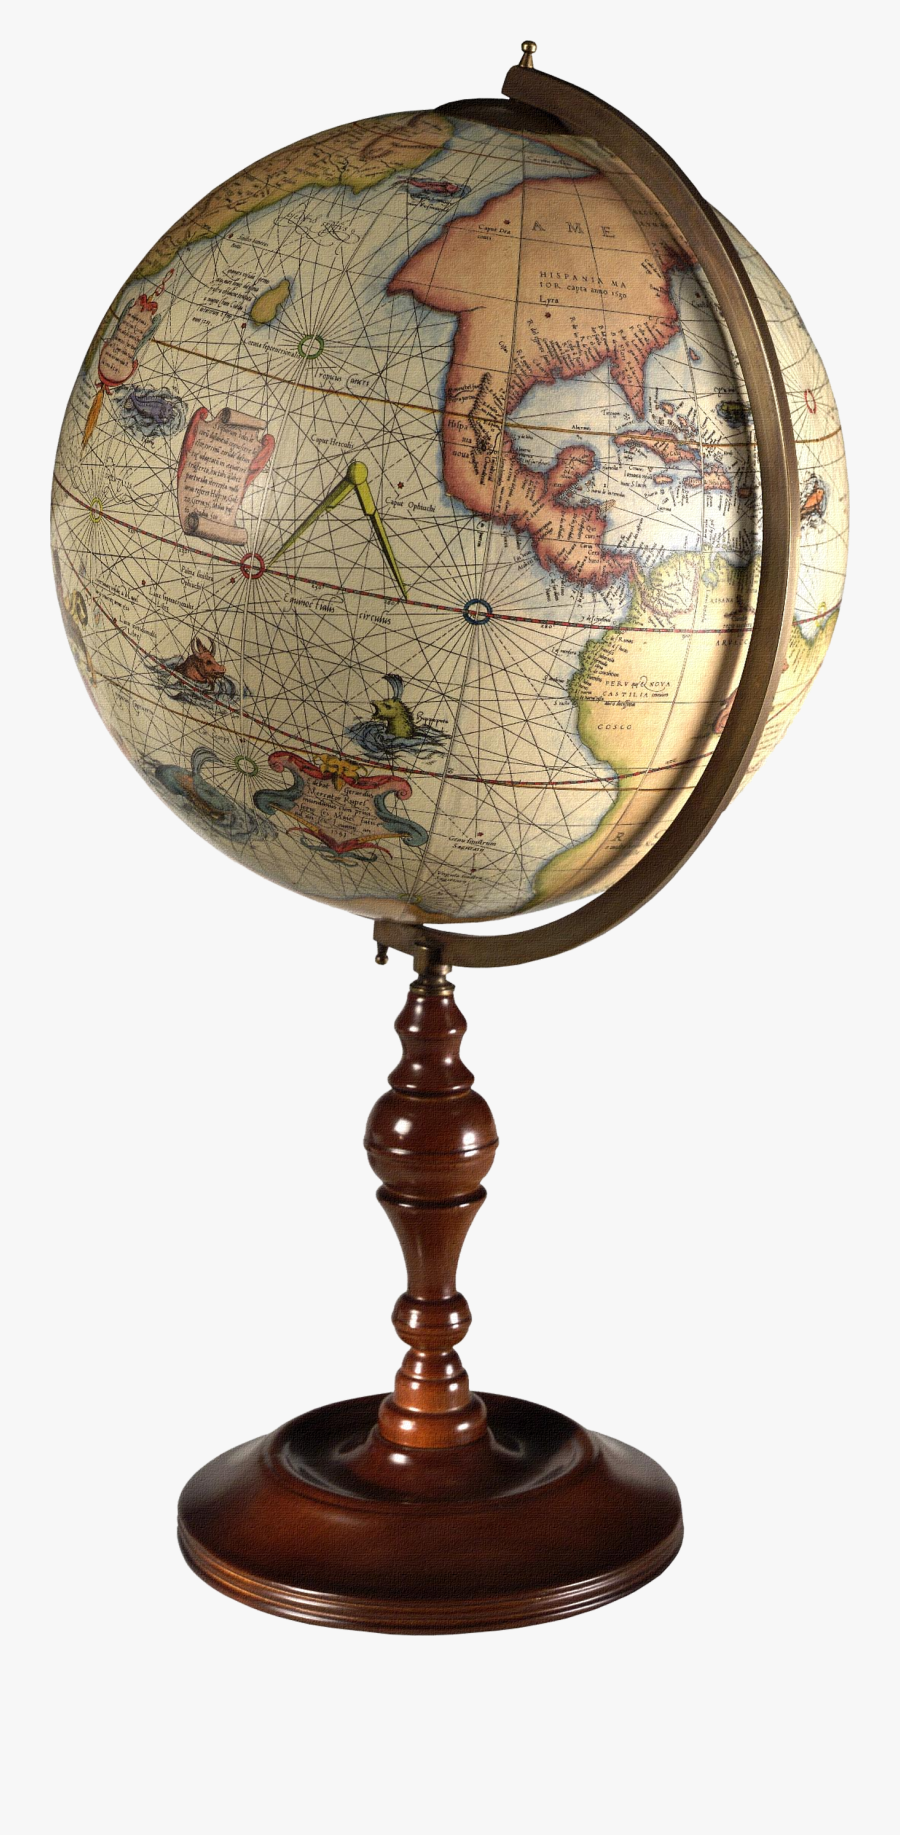 Clip Art Globes Maps - Old Earth Globe Png, Transparent Clipart